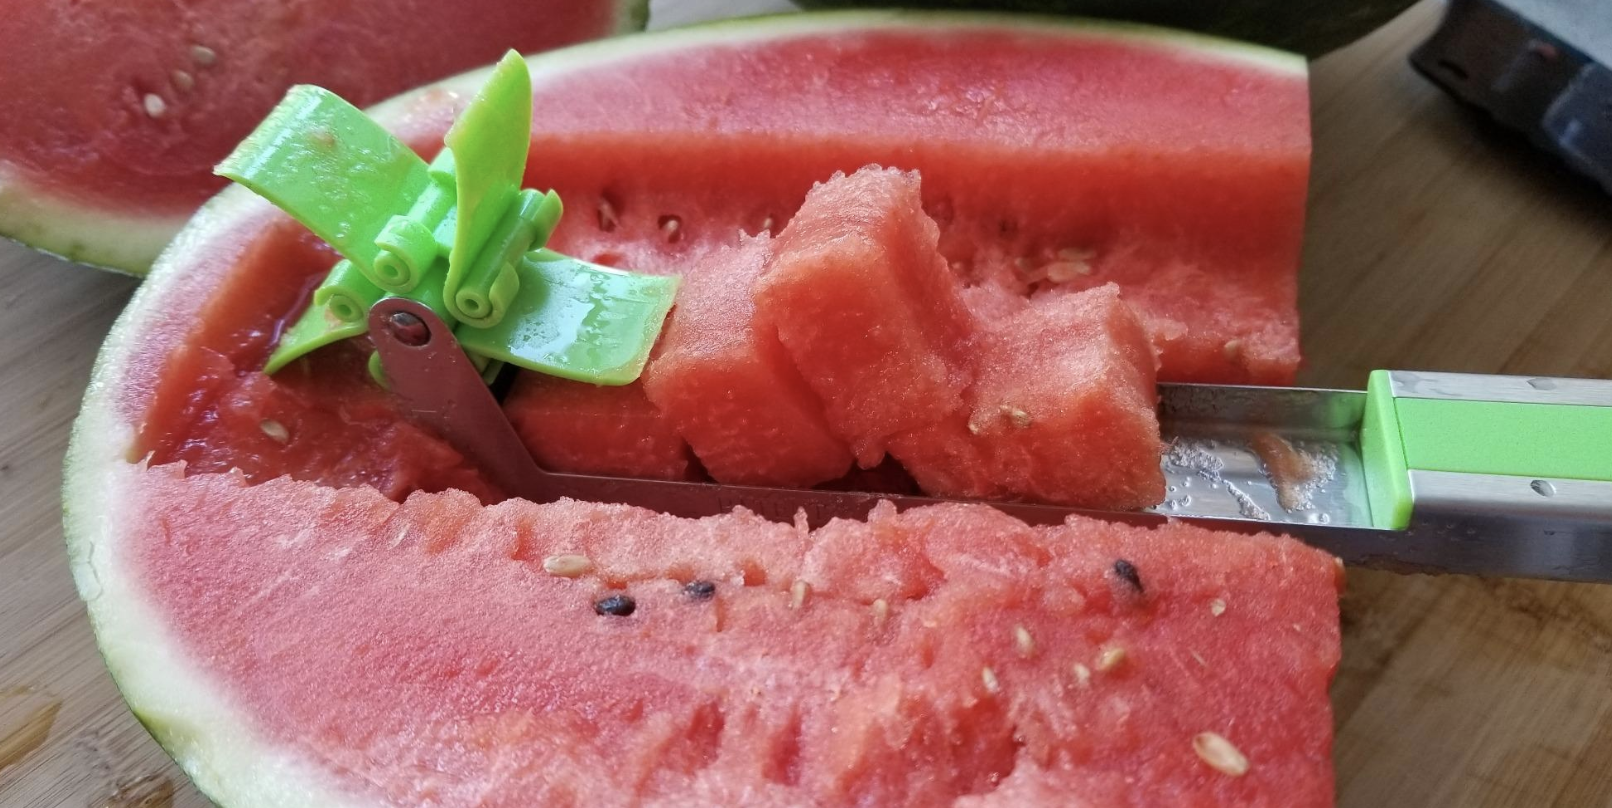 review photo of watermelon slicer in use